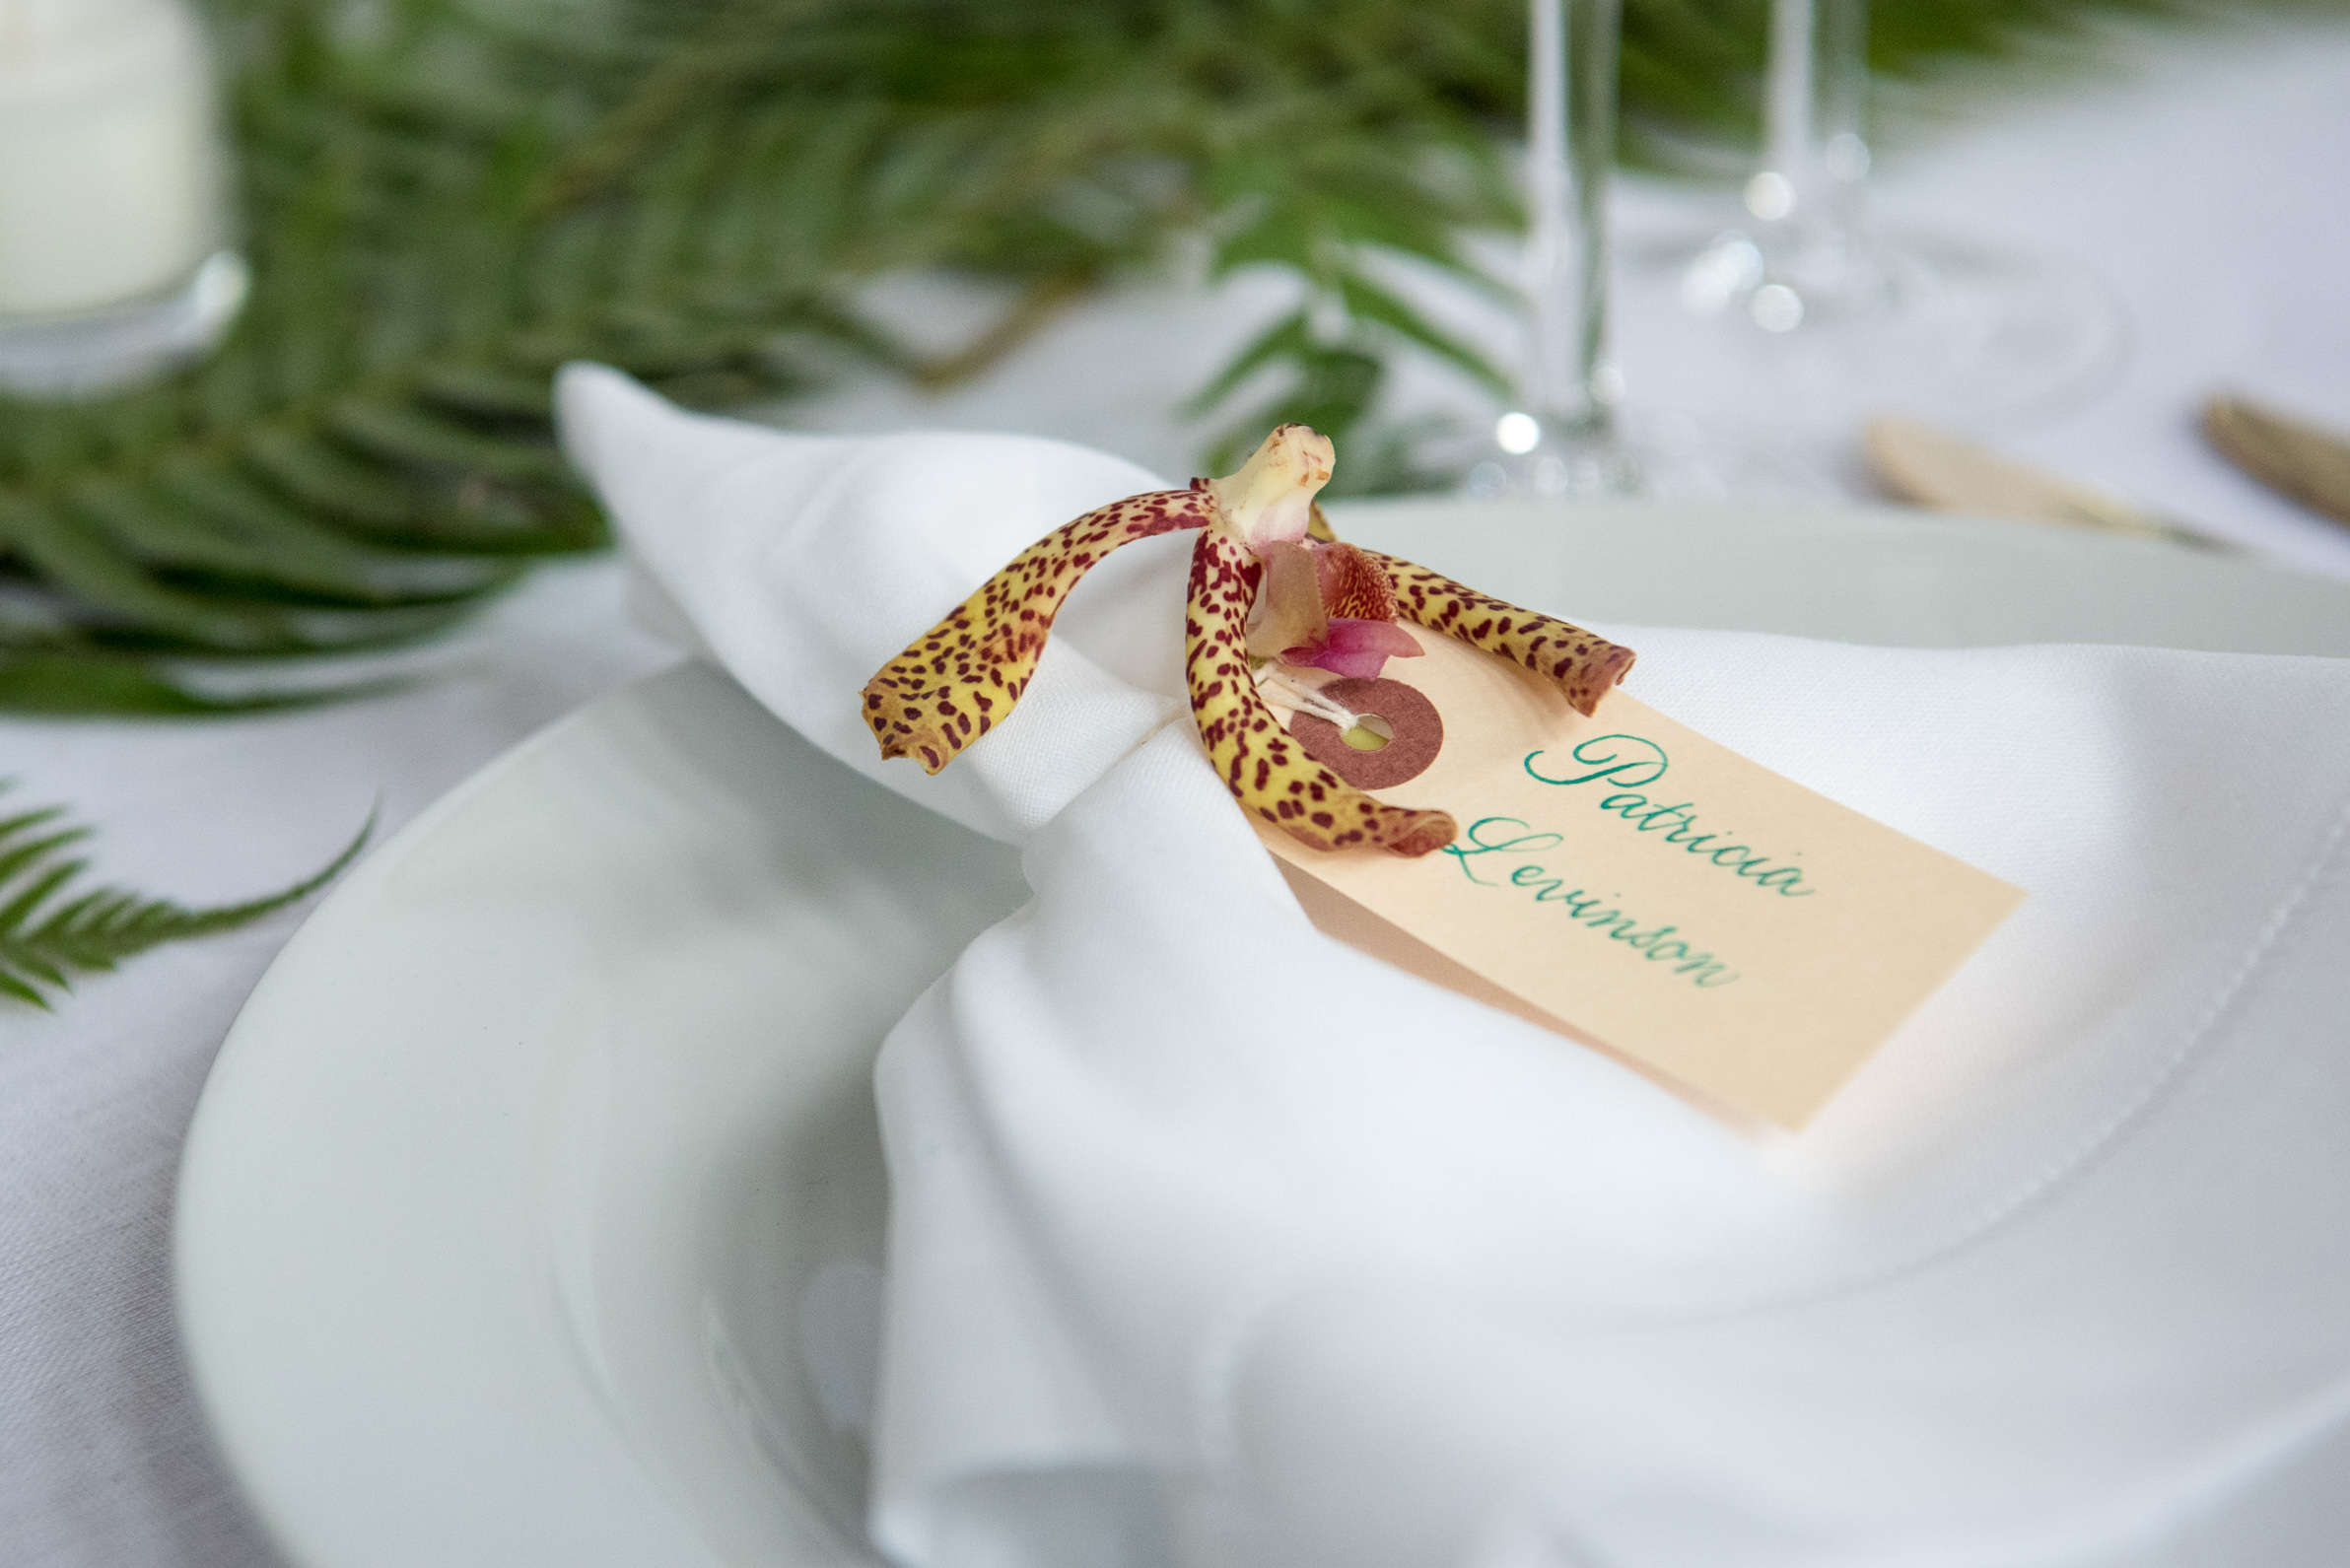 Name tags with flowers for wedding napkin folds | www.chavelli.com